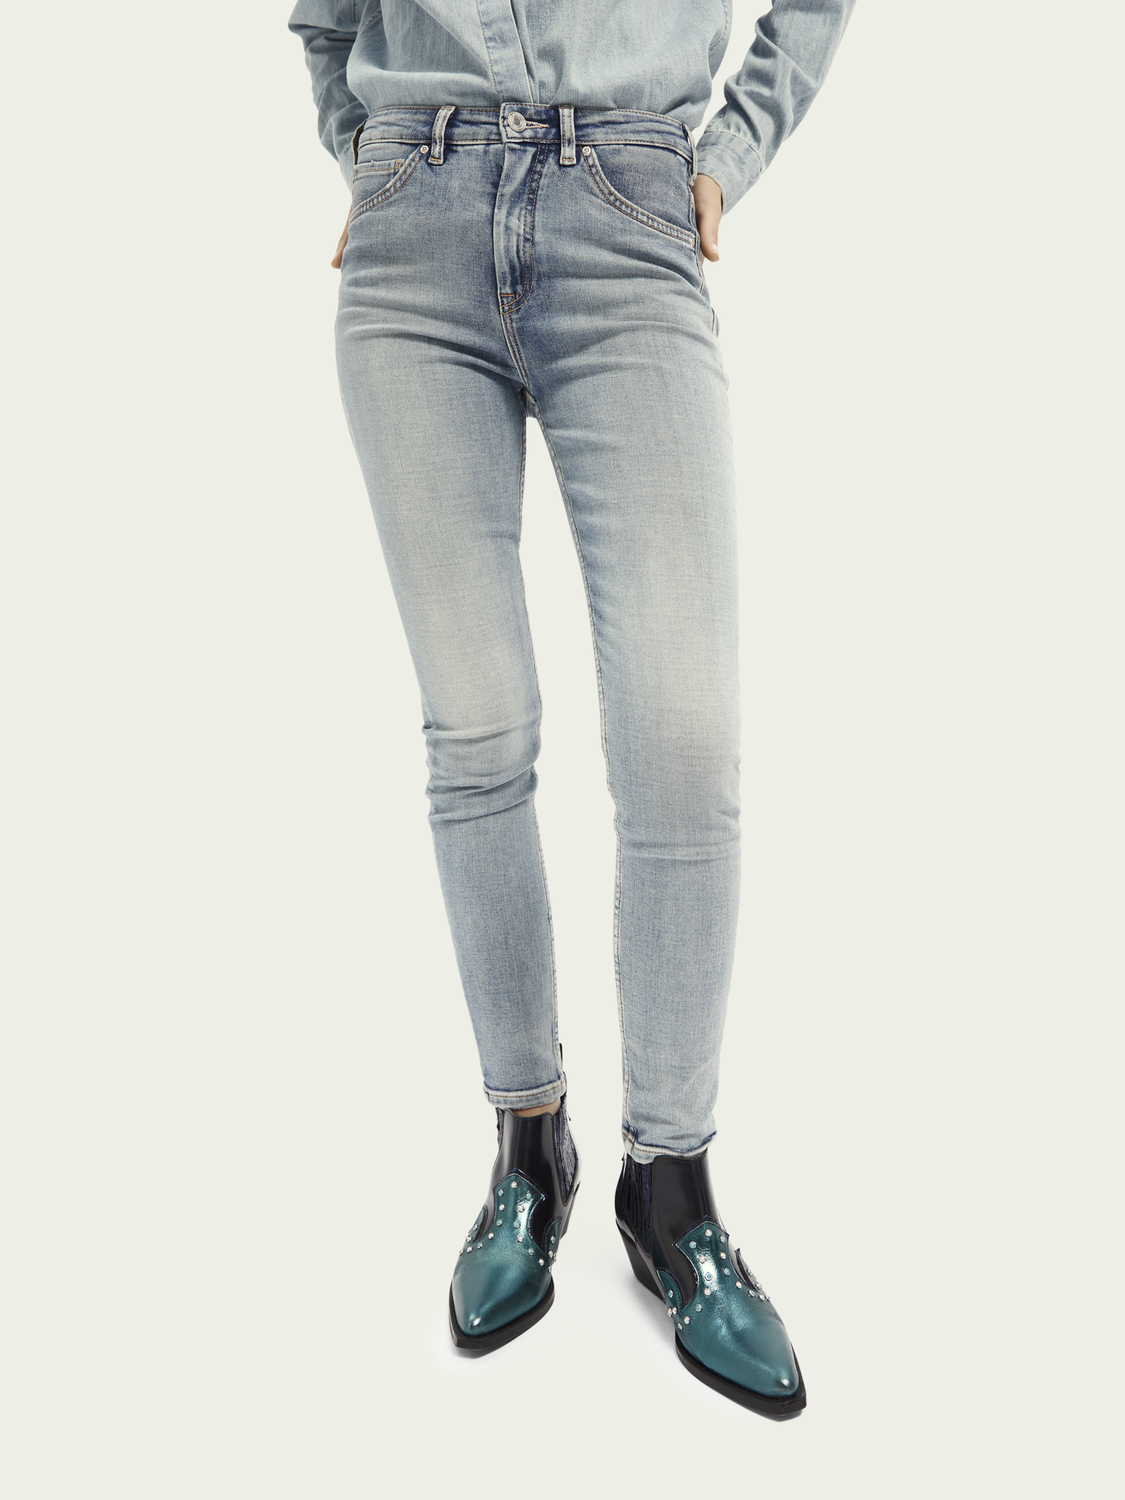 Damen Haut High-Rise Skinny Jeans – Showcase